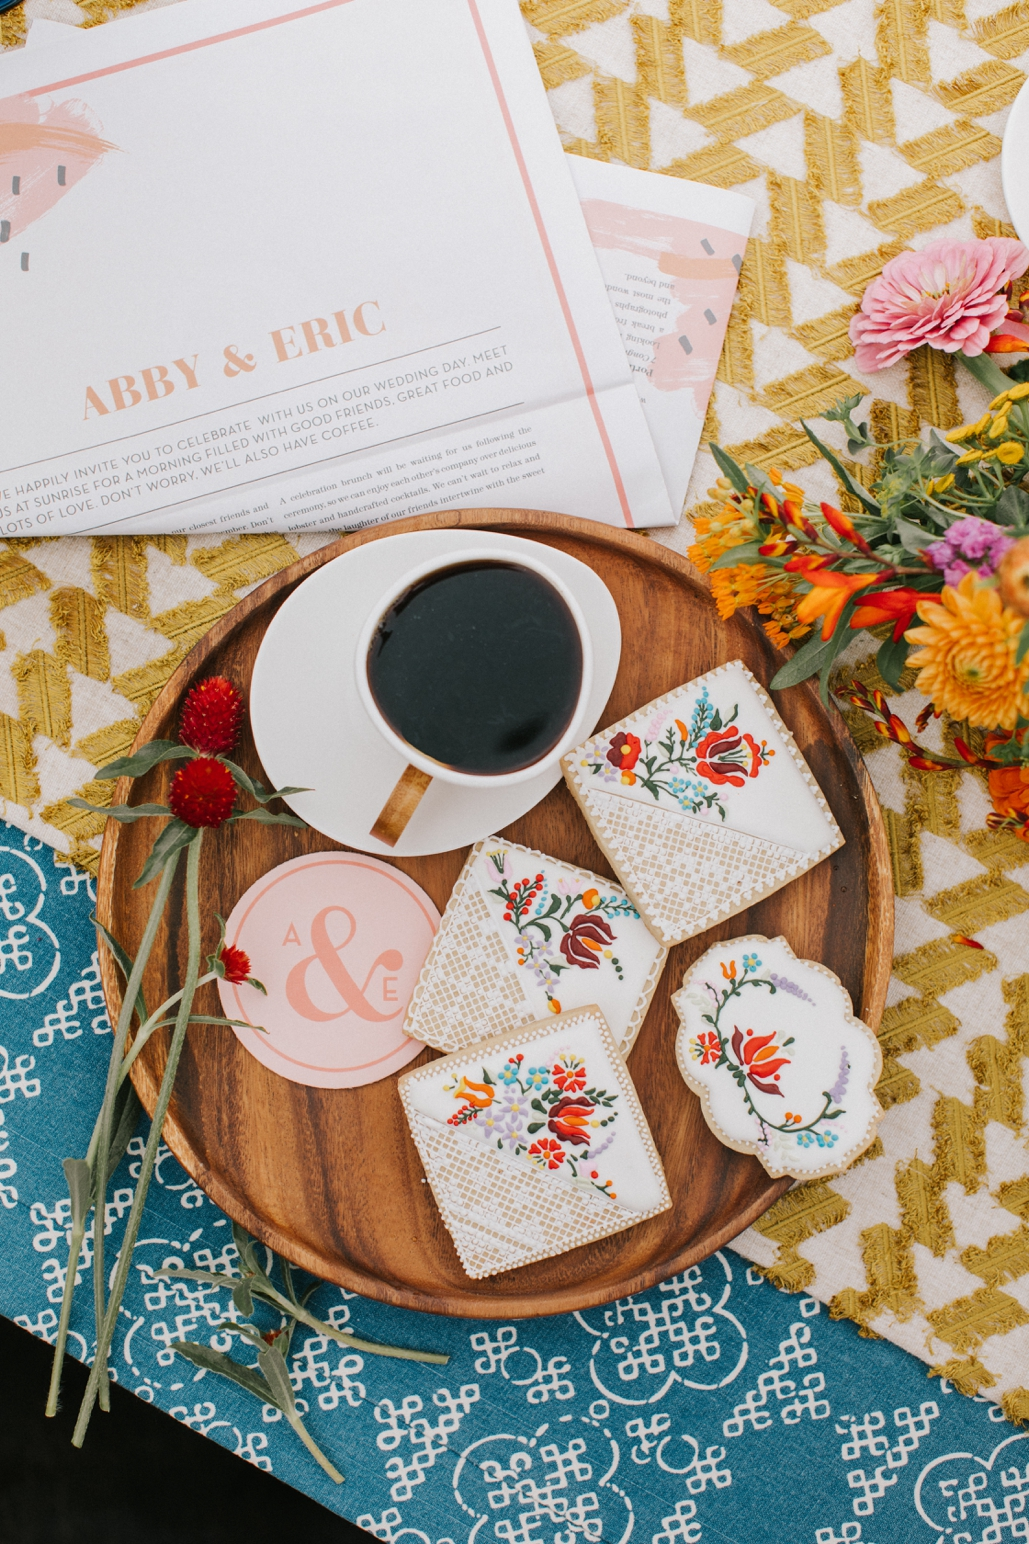 Sunday wedding brunch ideas, custom newspaper and decorated cookies, boho bride inspiration